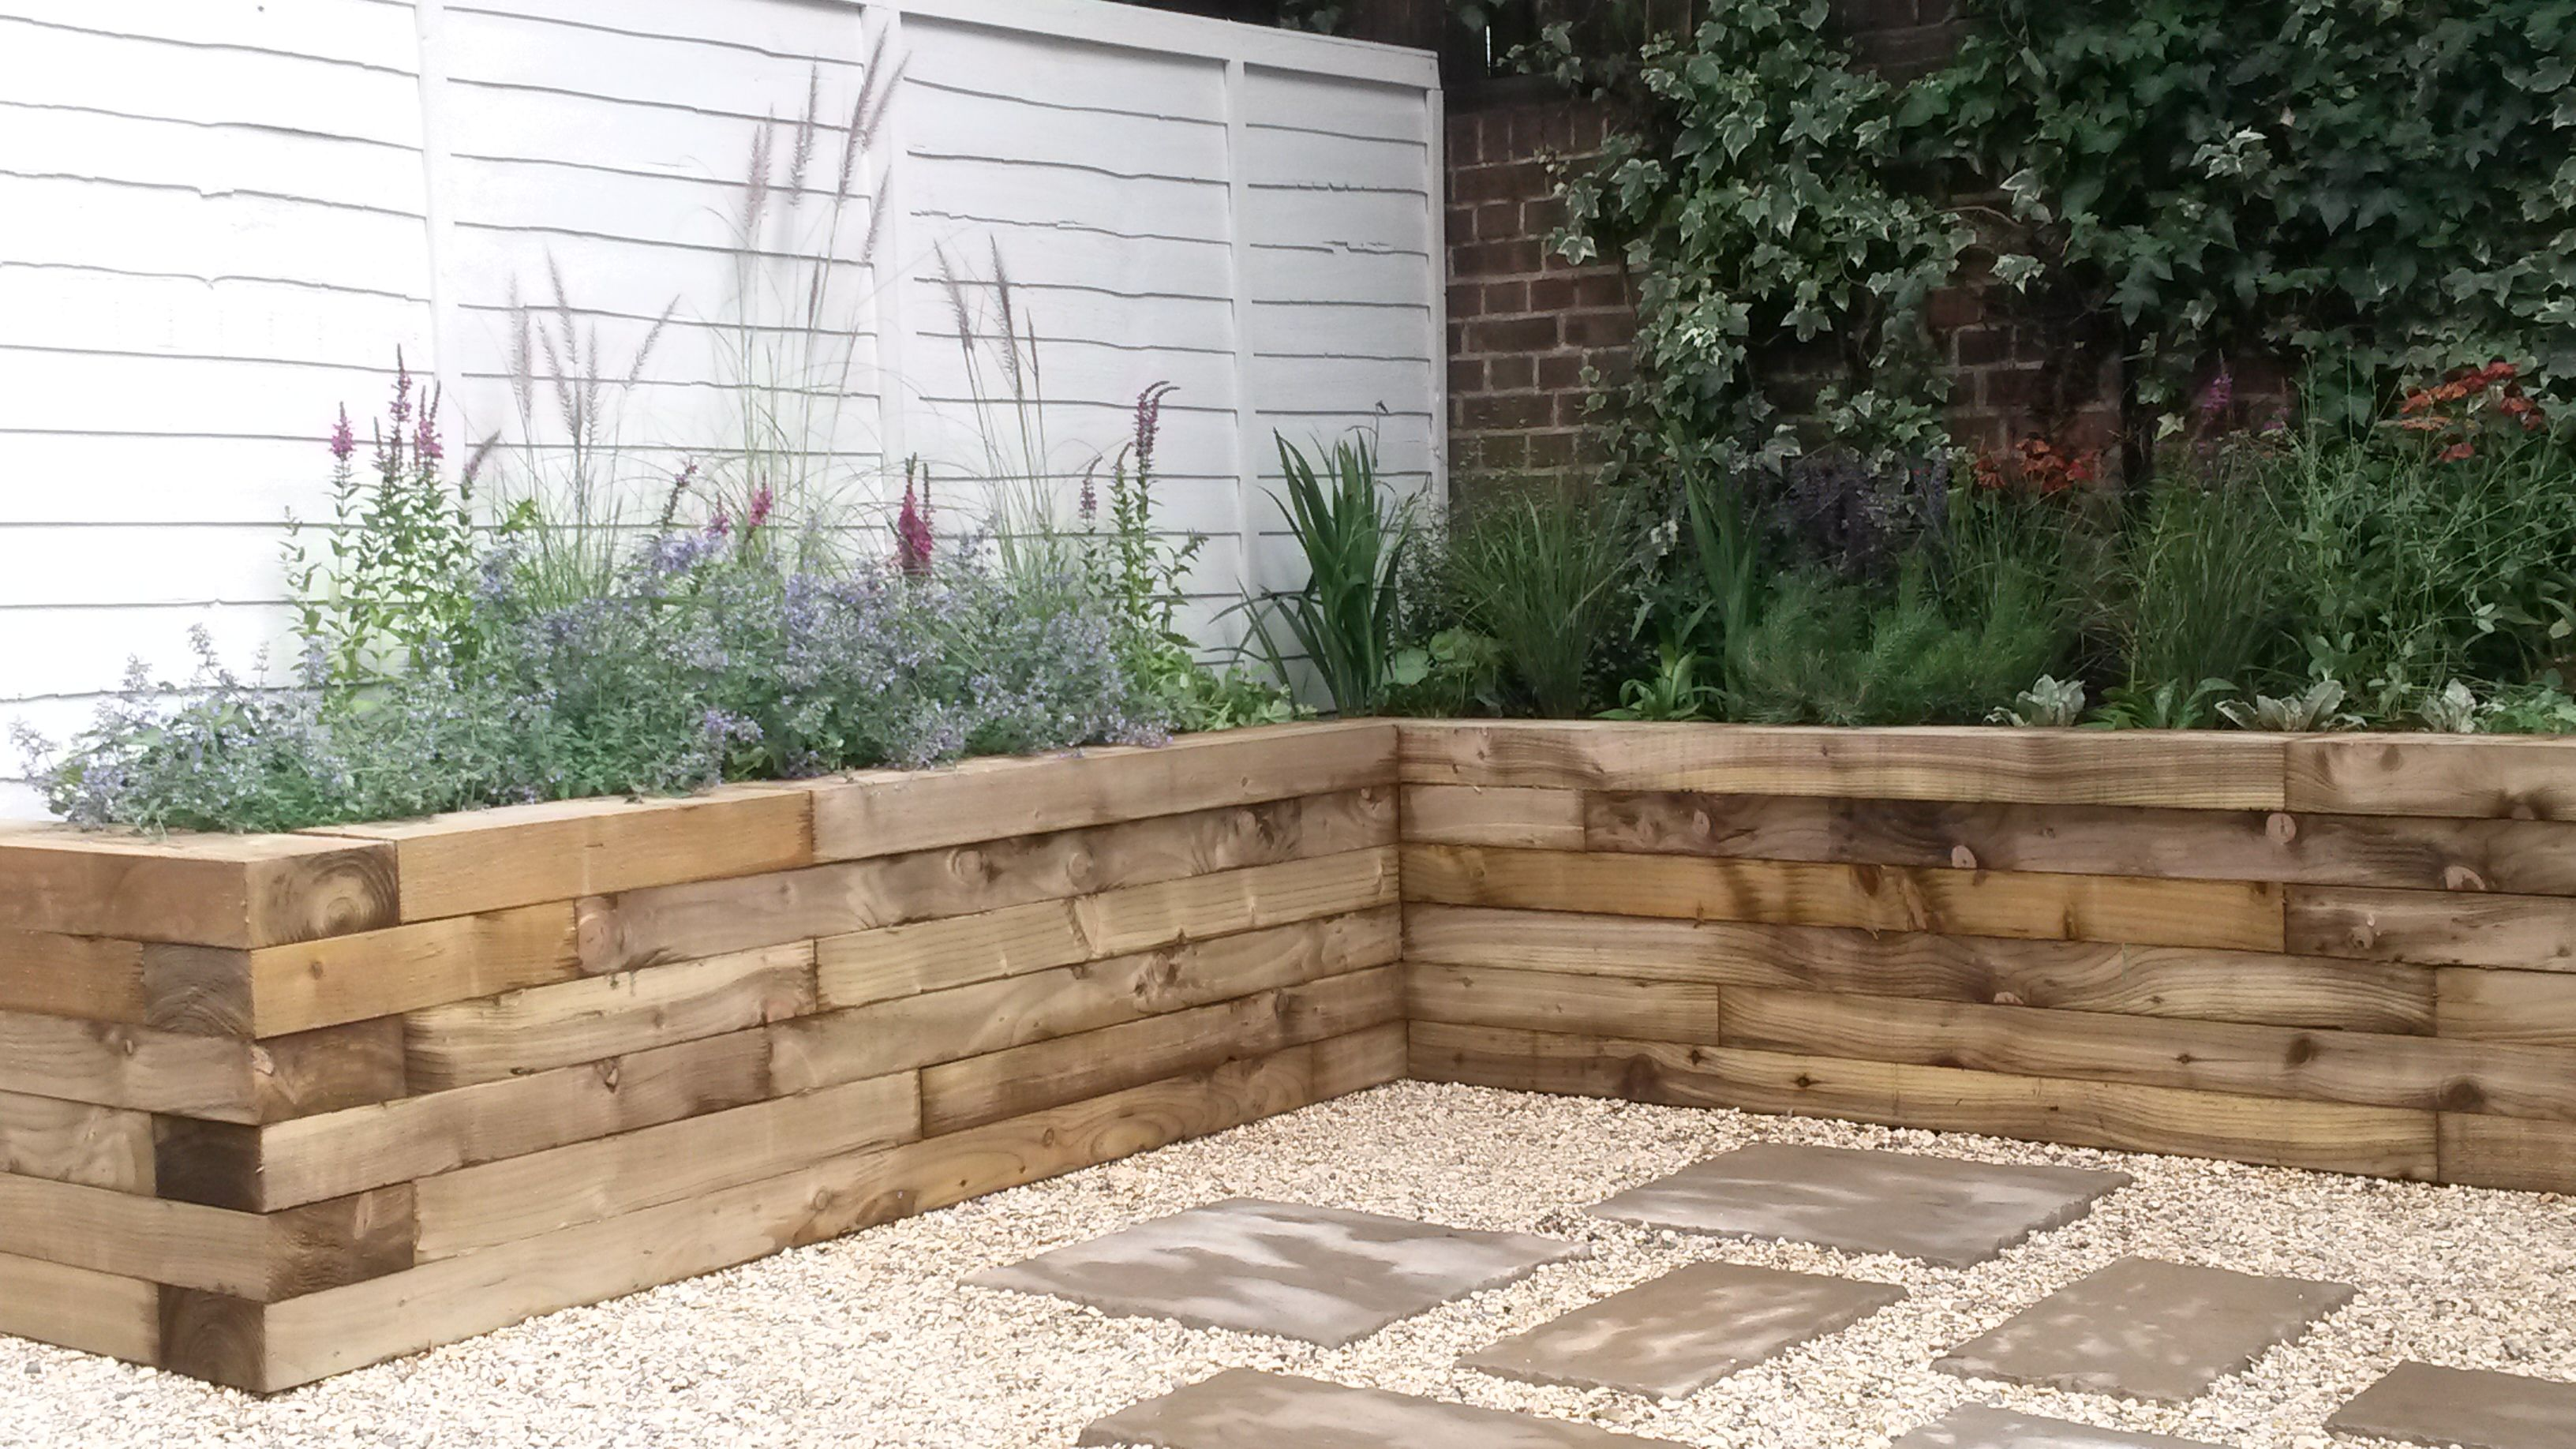 Raised Beds Made Of Railway Sleepers Planted With Low Maintenance